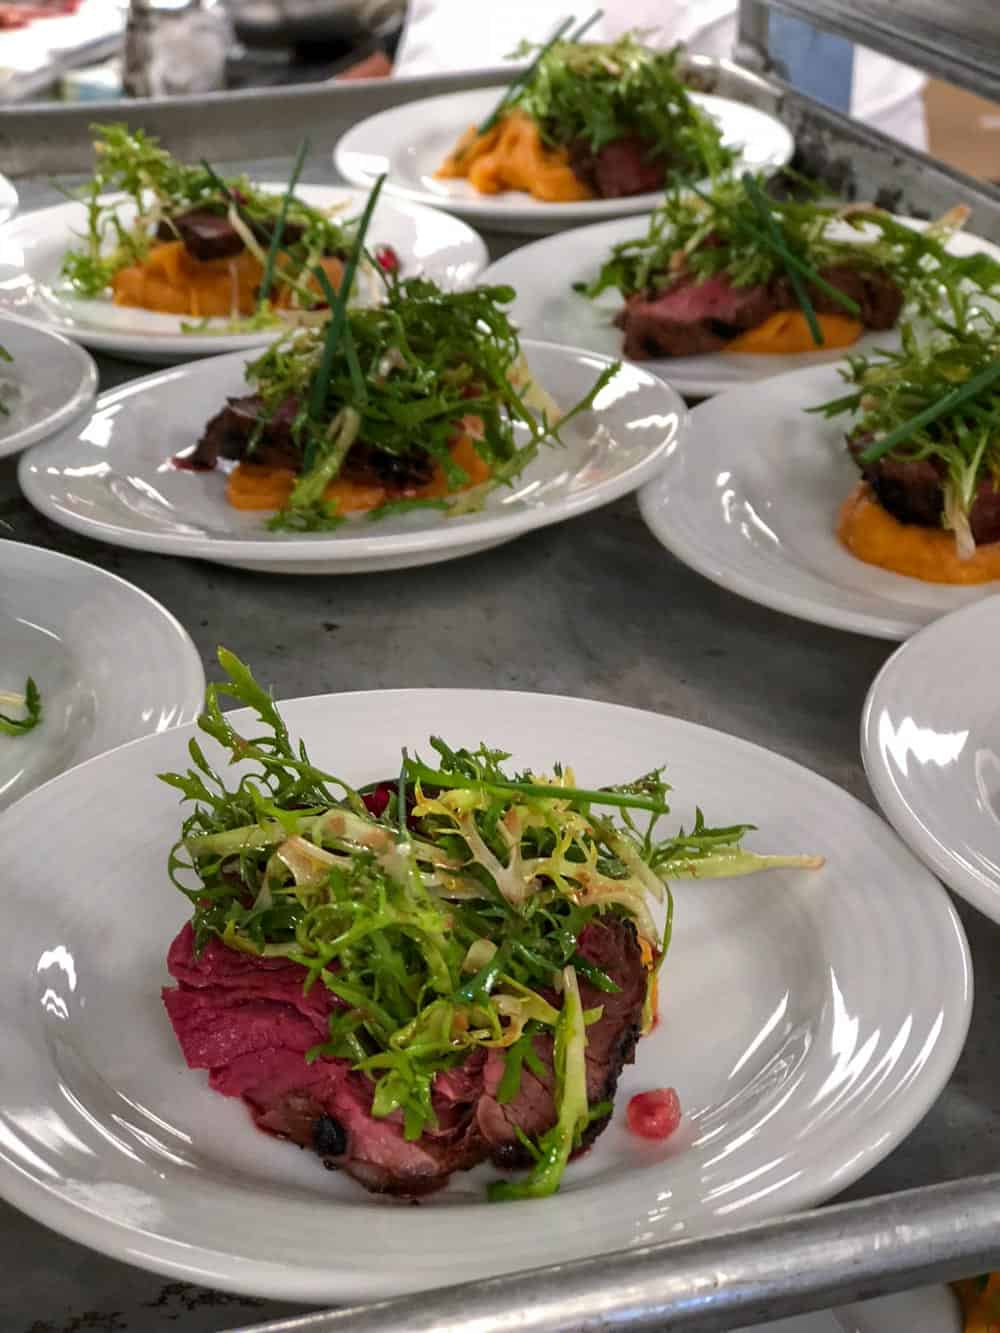 A close up of the beef tenderloin atop sweet potato puree ready to be served to guests.